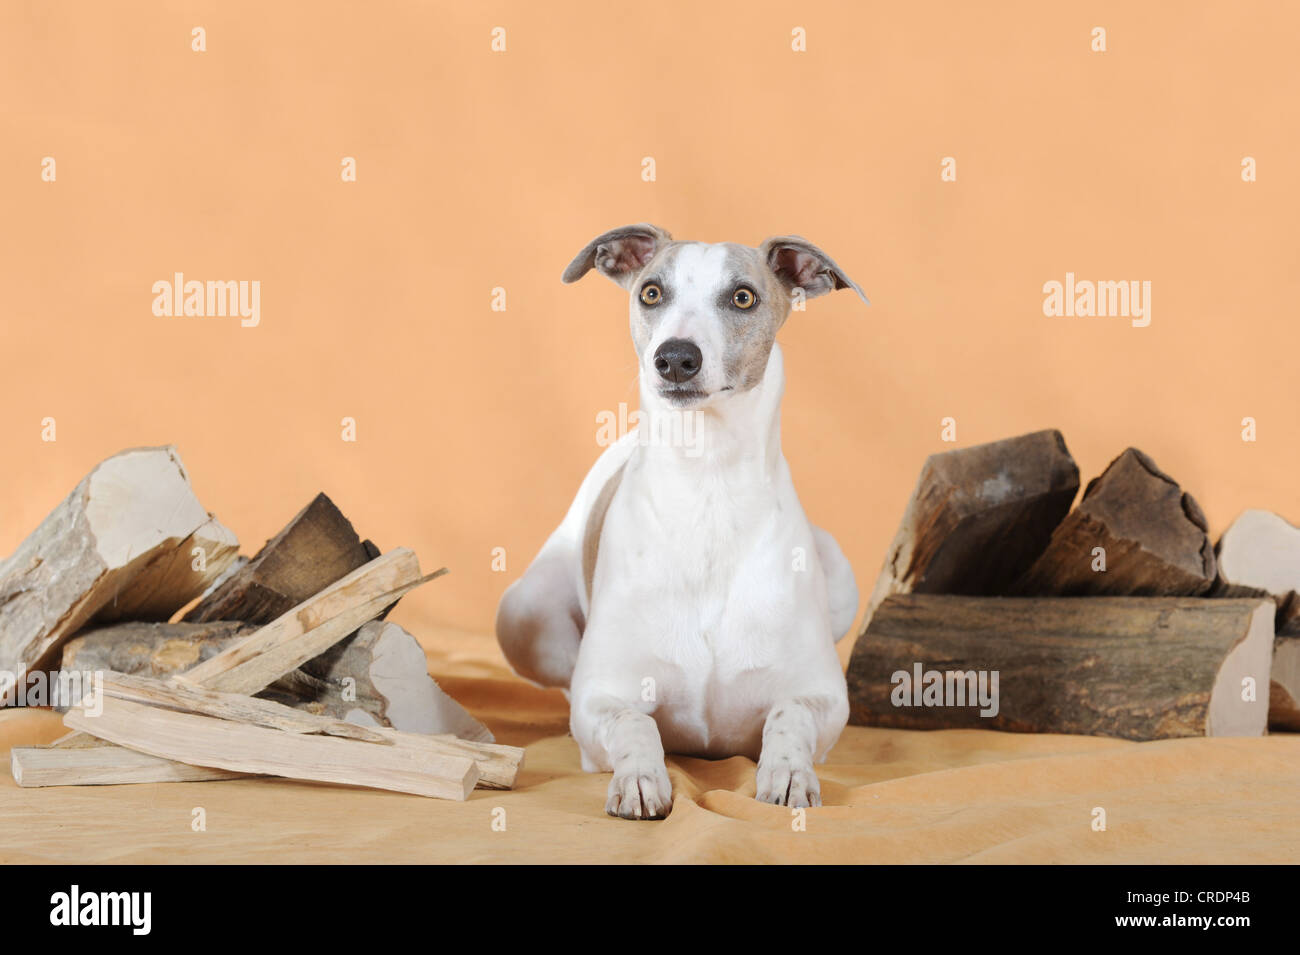 Whippet lying between logs - Stock Image